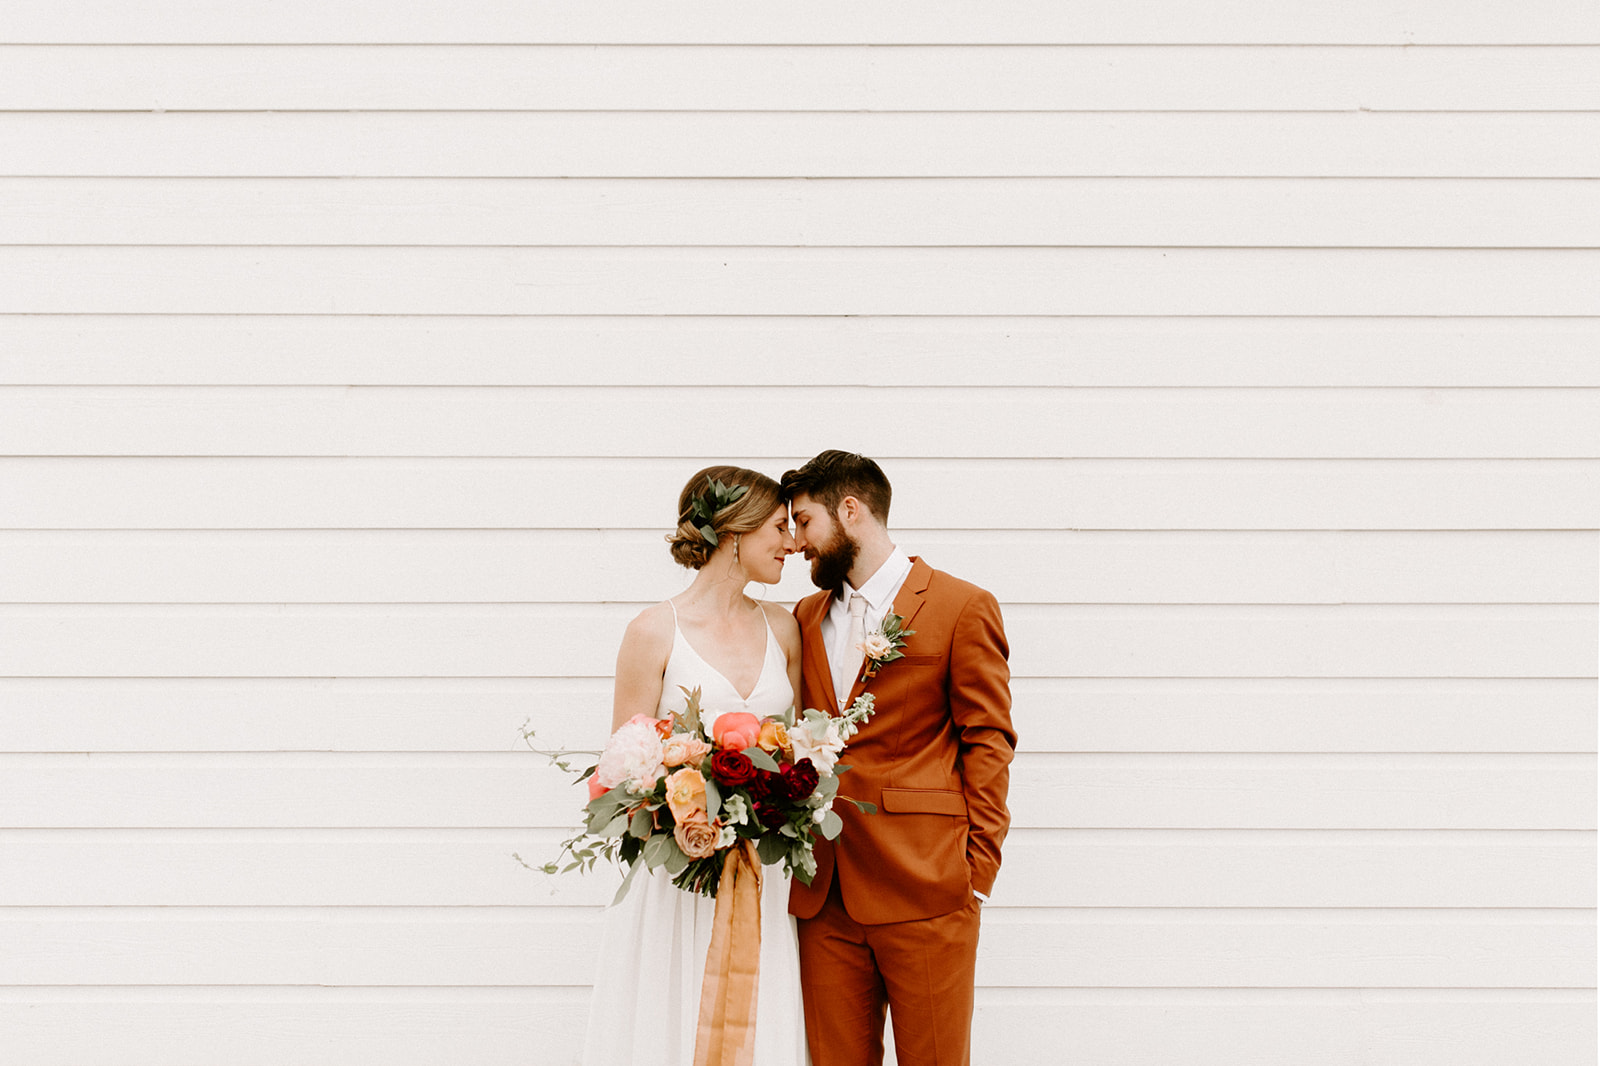 A bride and groom photo at their Butler Barn wedding in Oregon